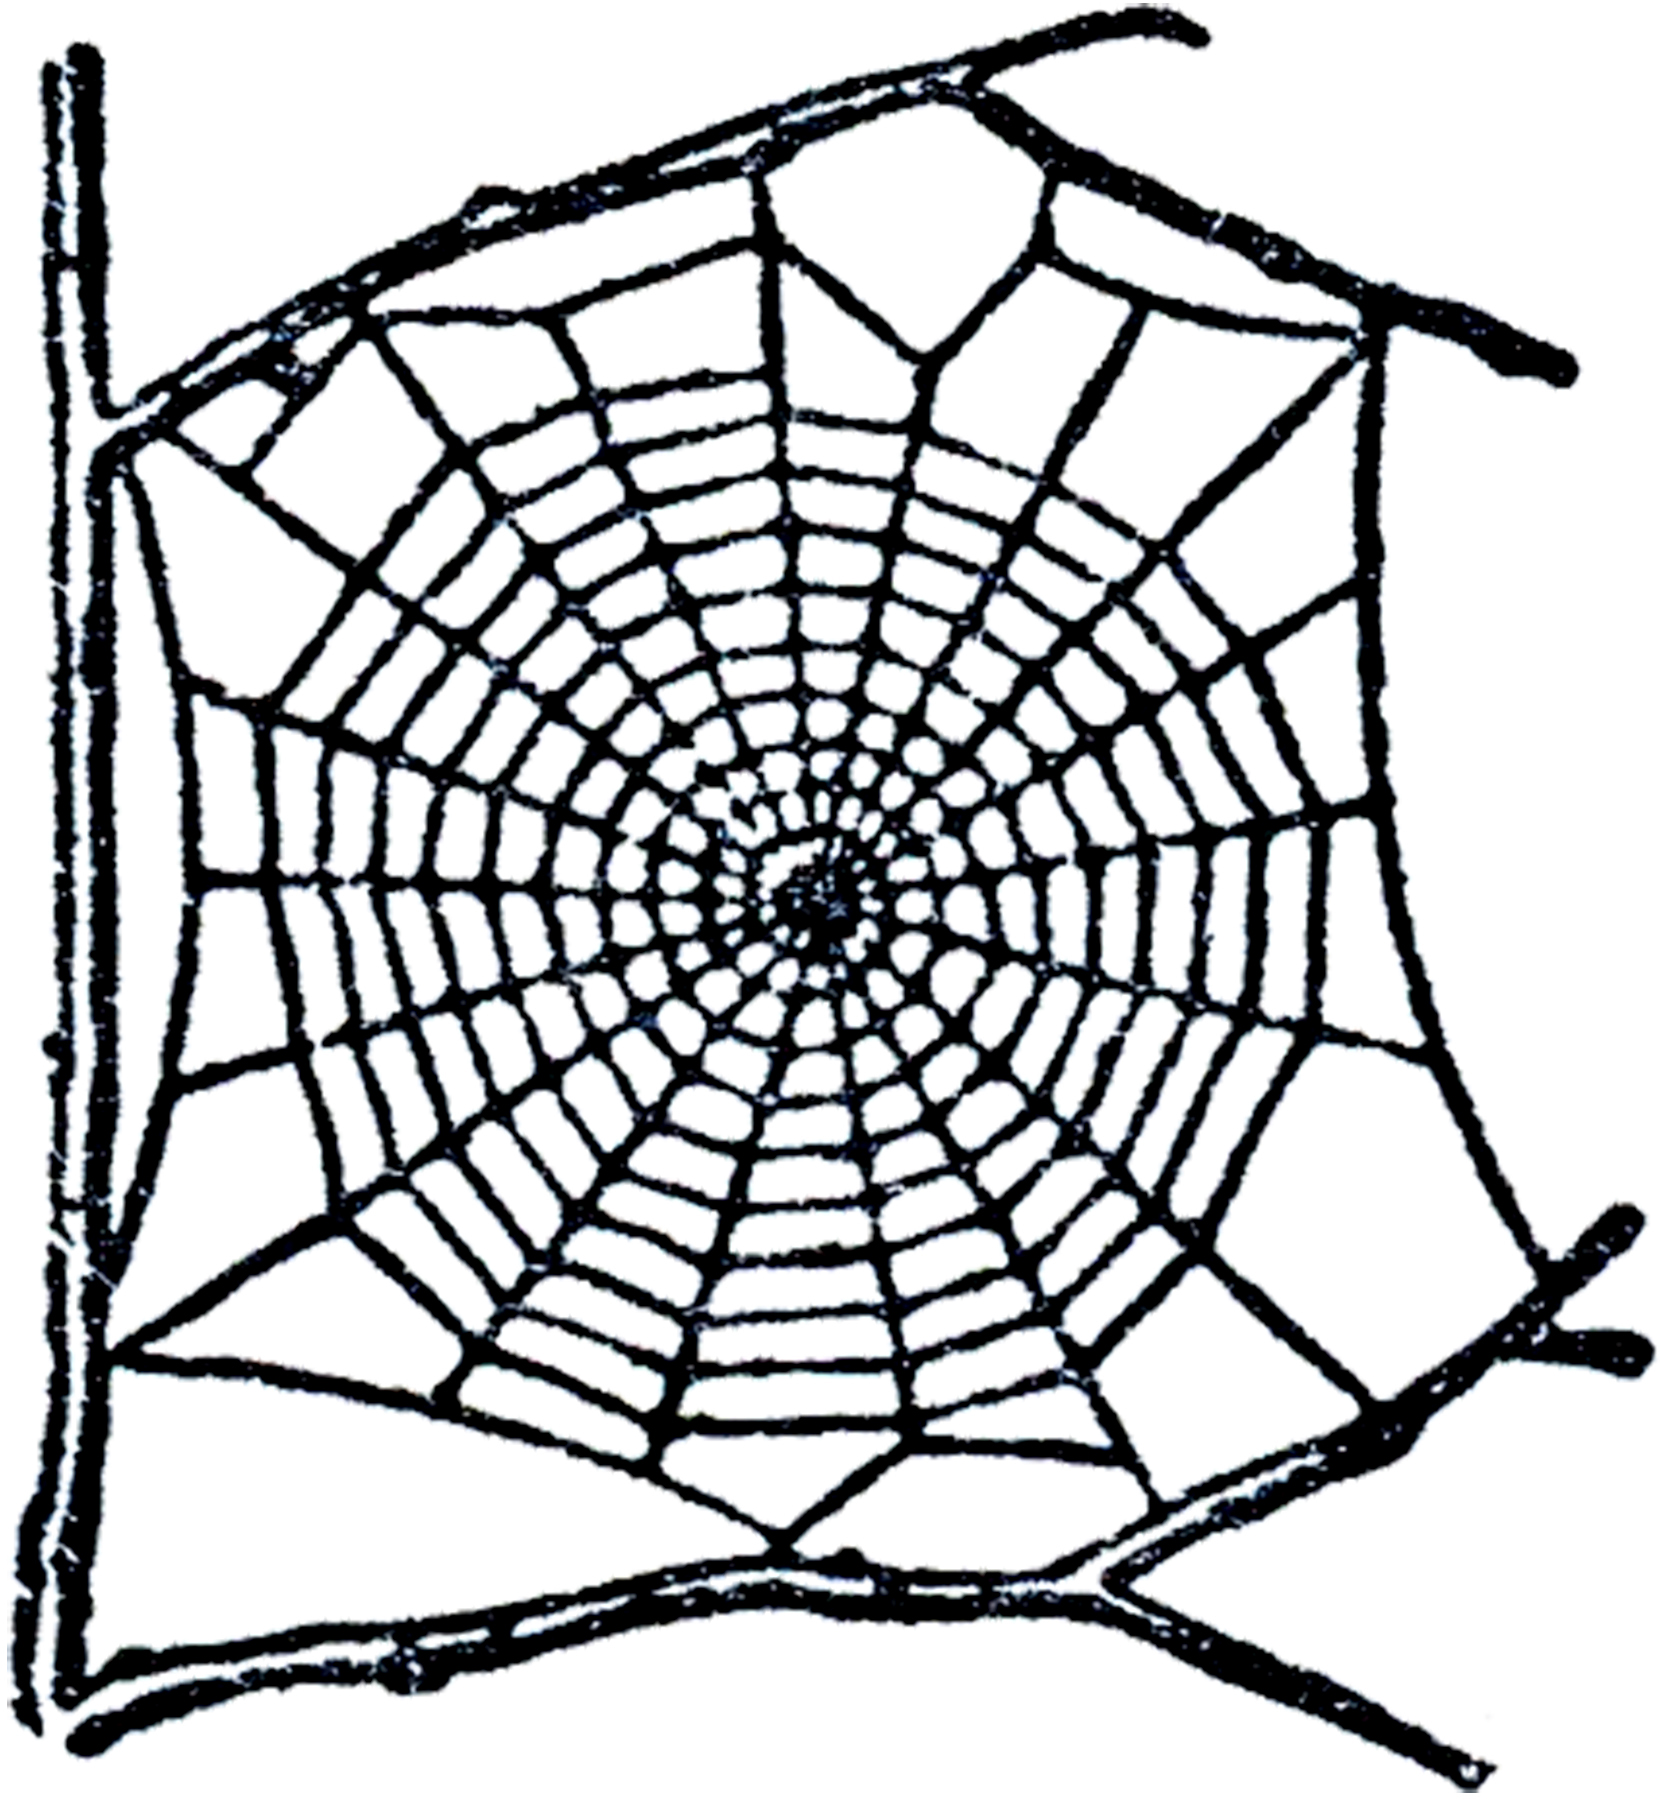 1660x1800 Free Spider Web Clip Art The Graphics Fairy 2